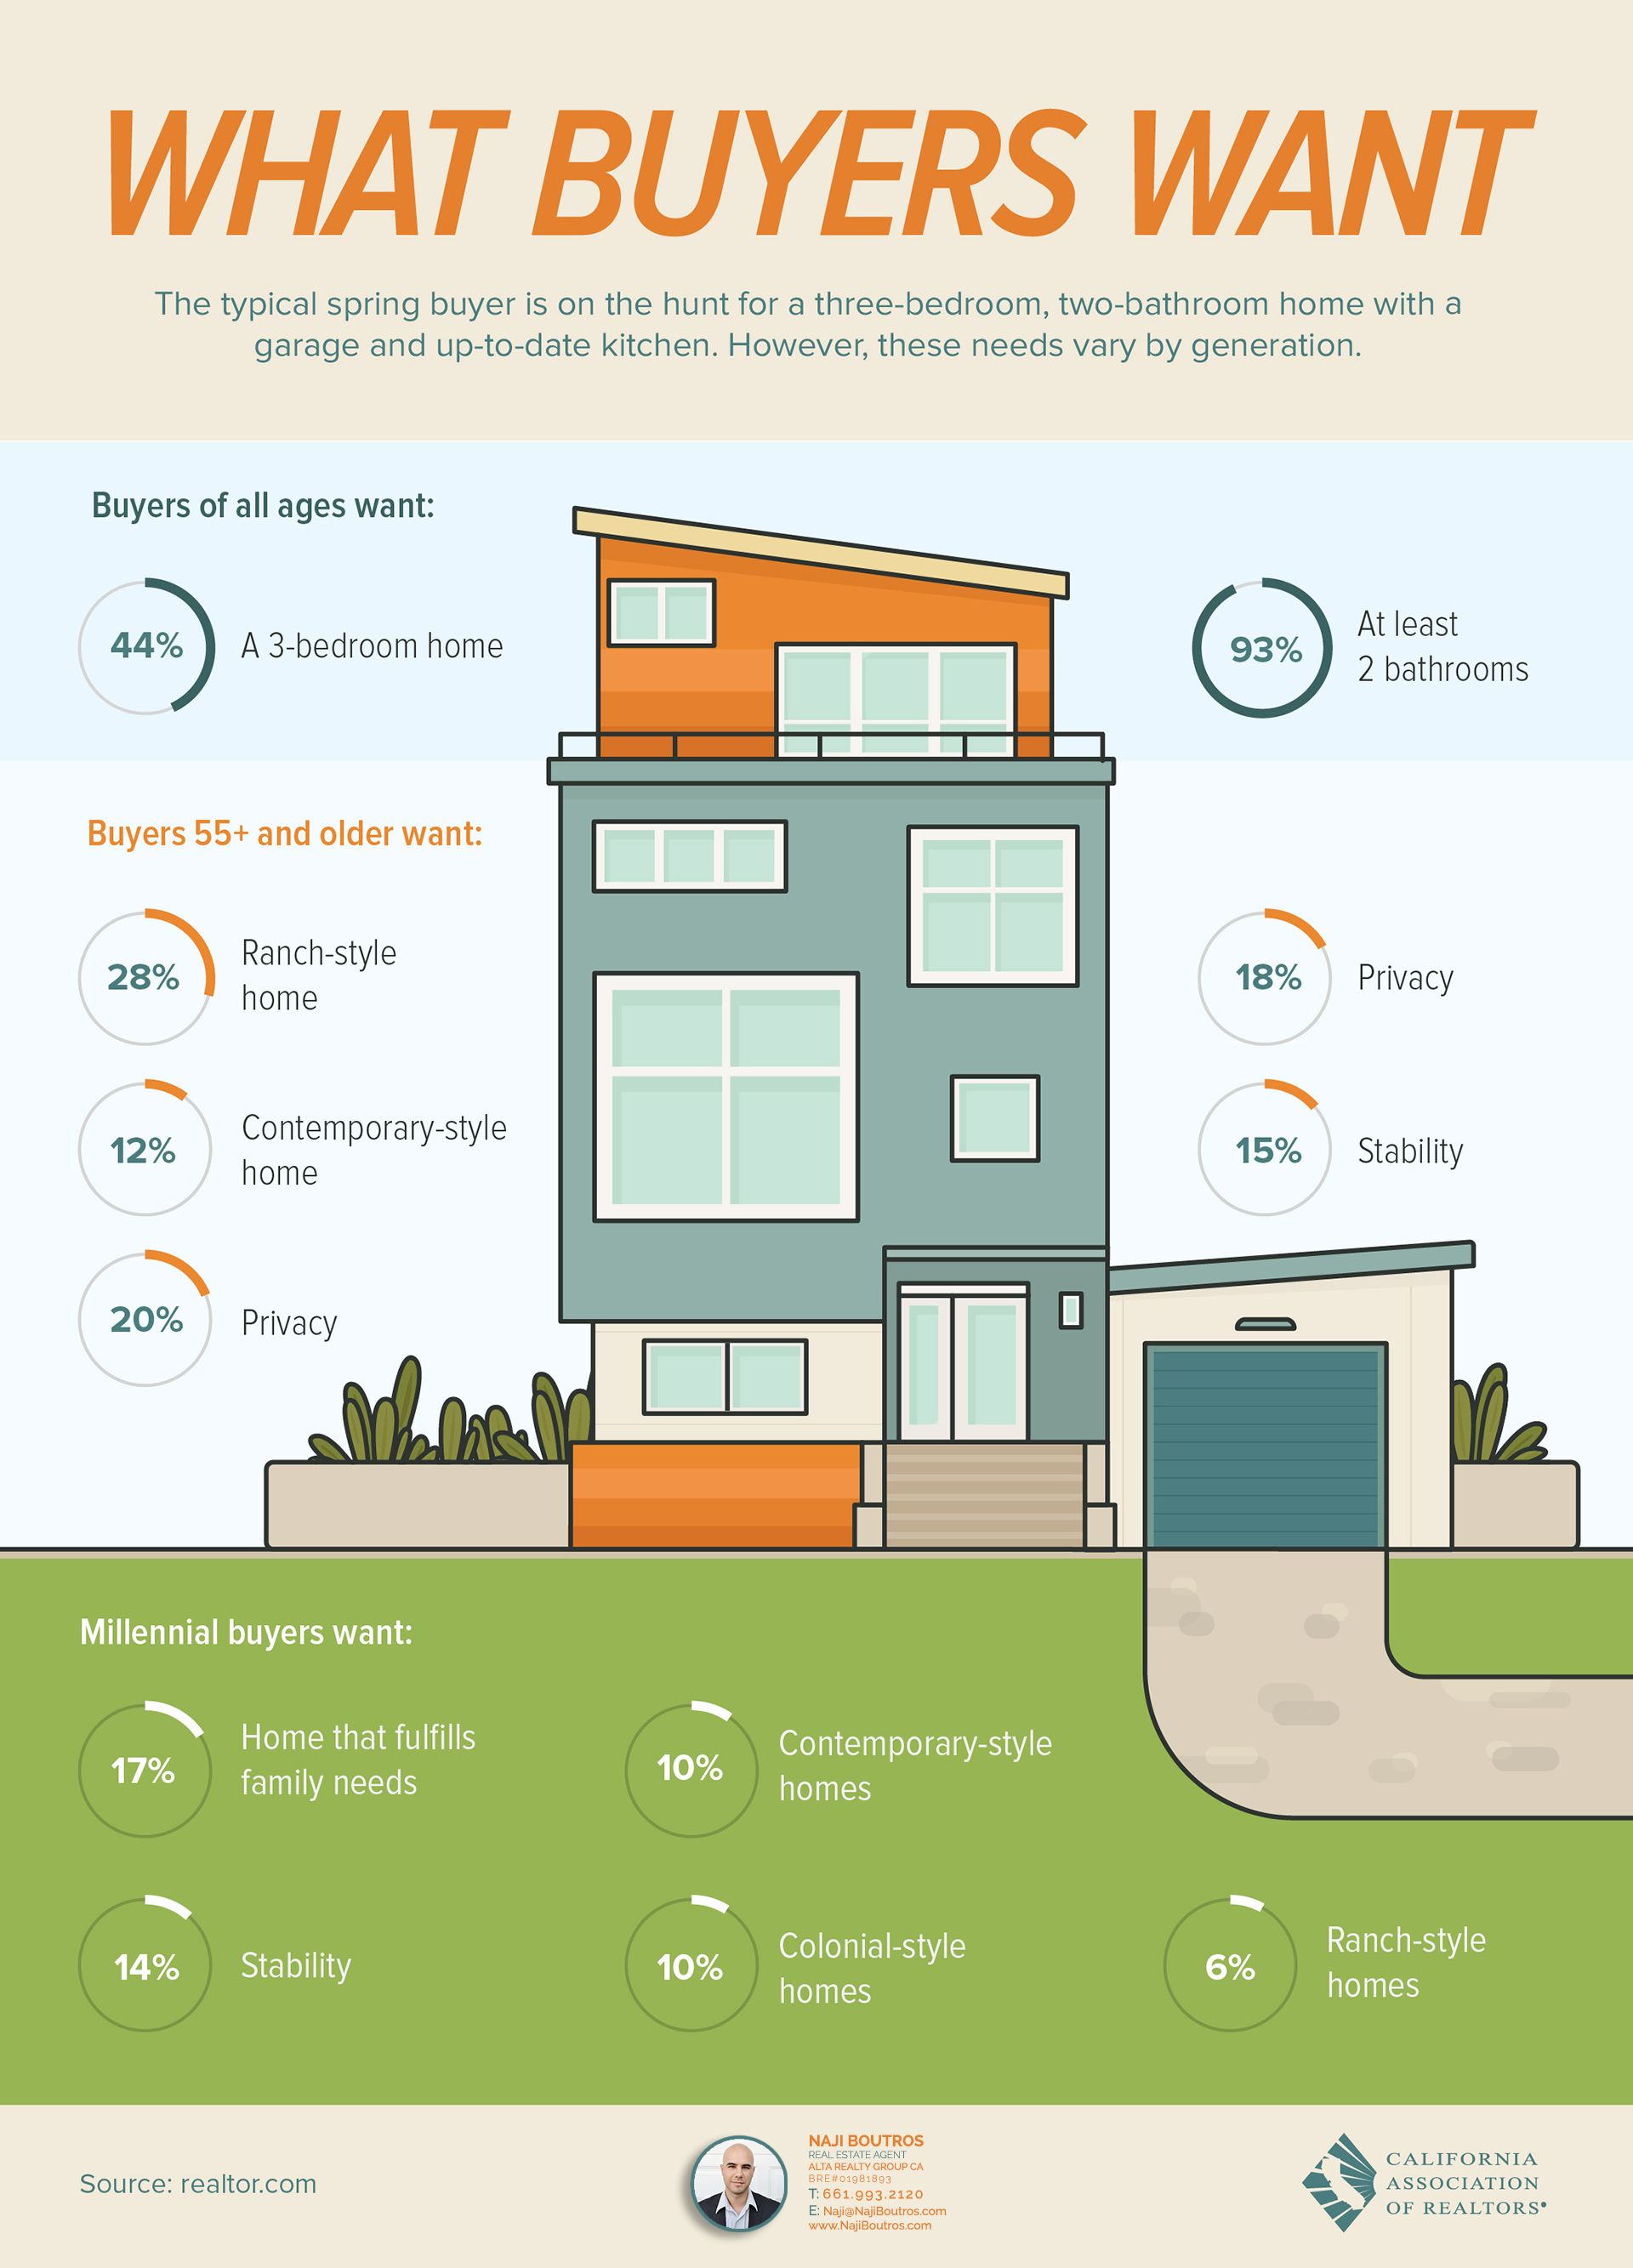 Infographic depicting the generational differences in house preferences